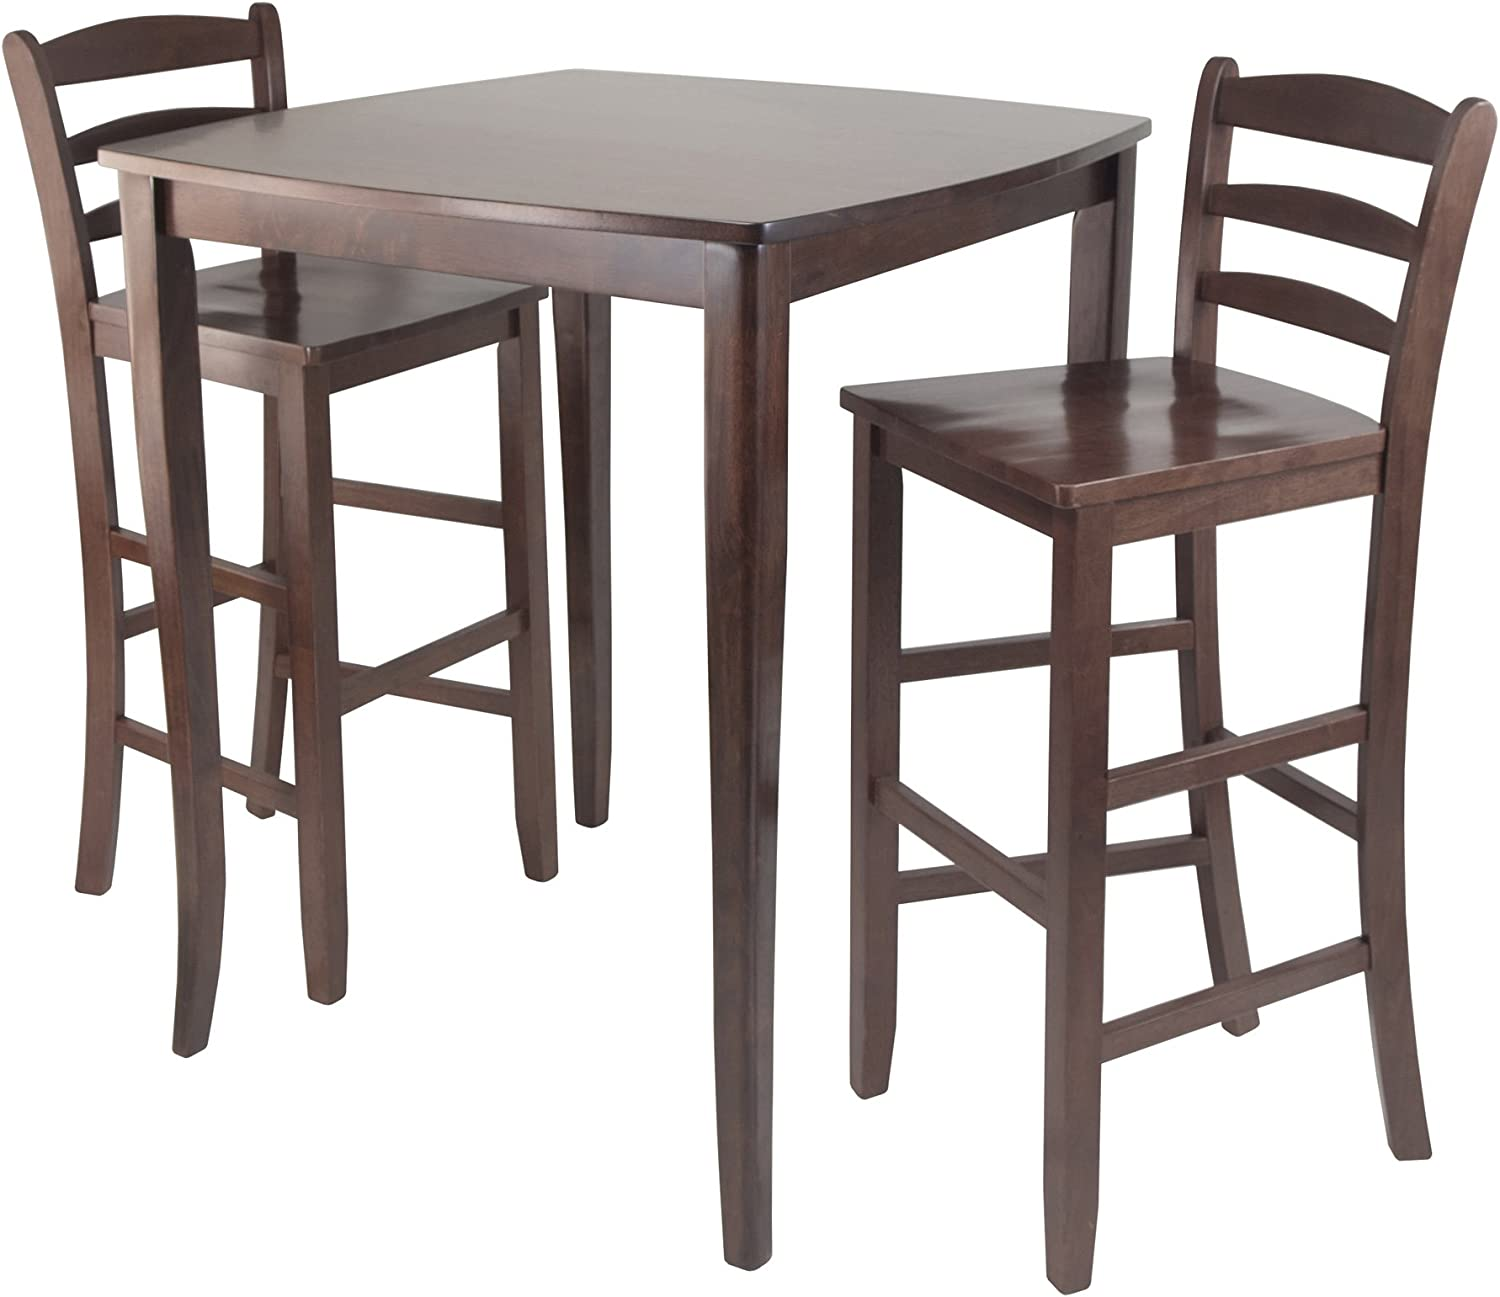 Winsome Inglewood High/Pub Dining Table with Ladder Back Stool, 12-Piece